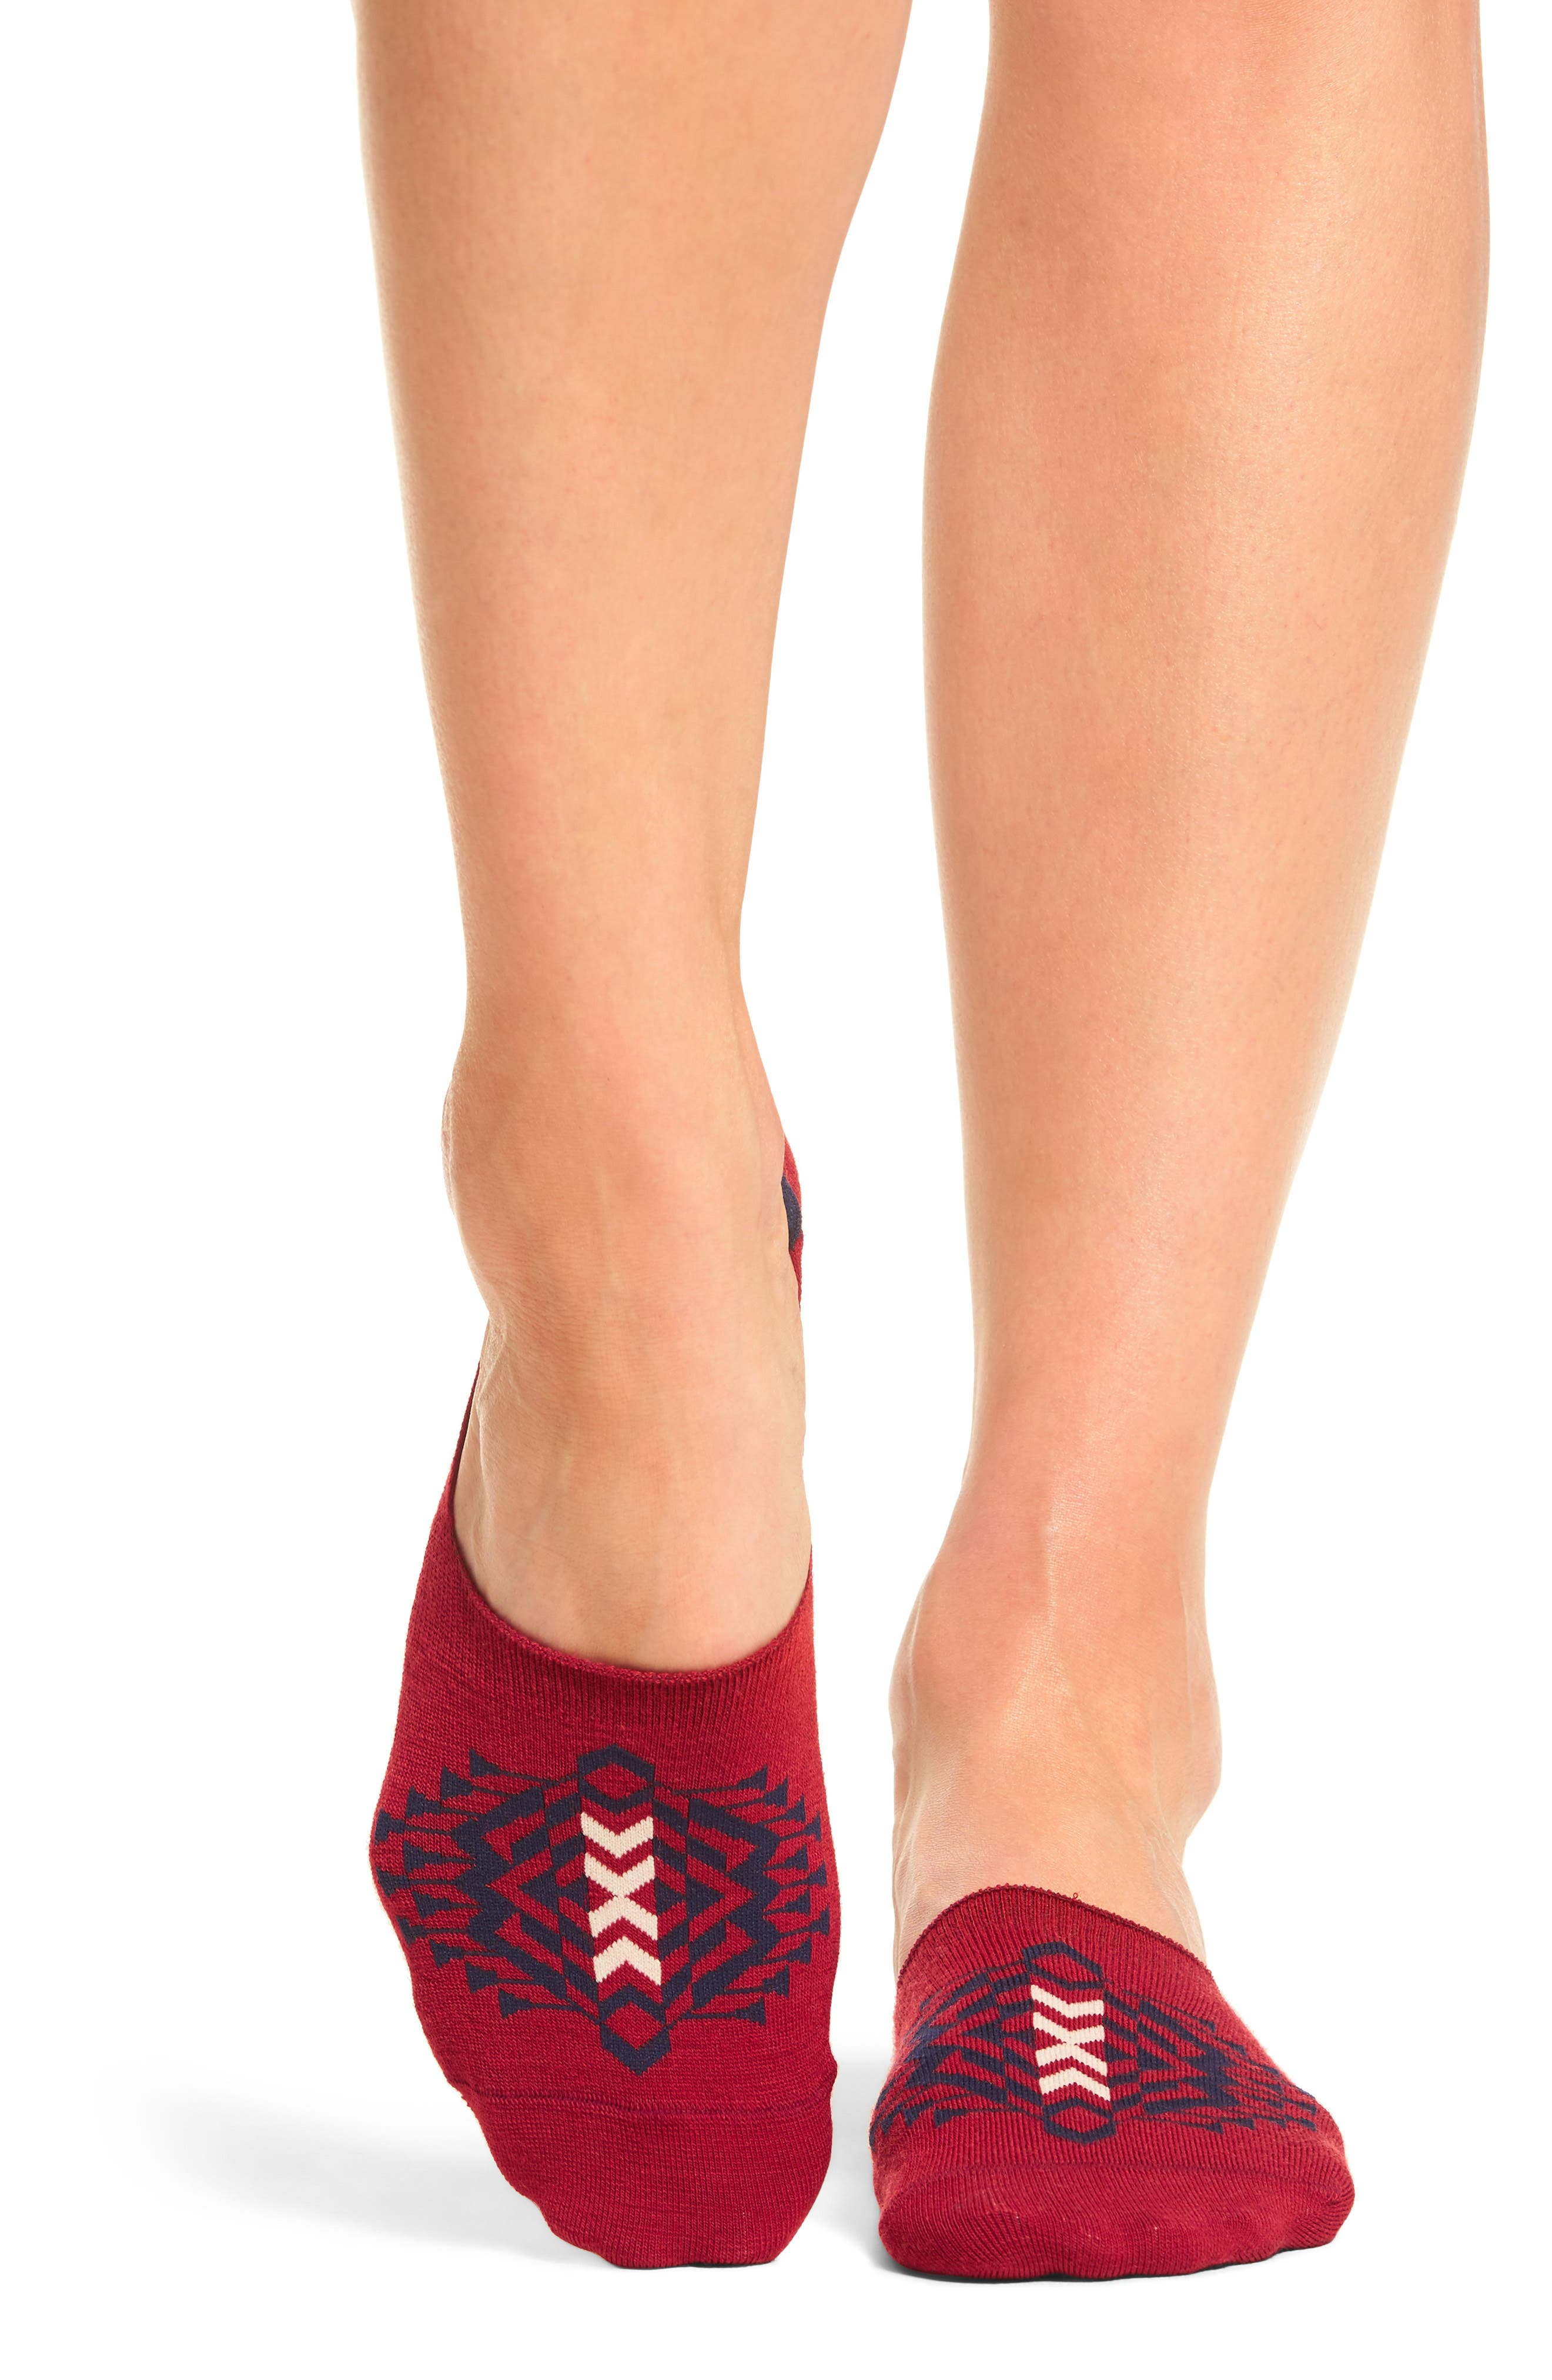 Tolovana No-Show Socks,                             Main thumbnail 1, color,                             Red